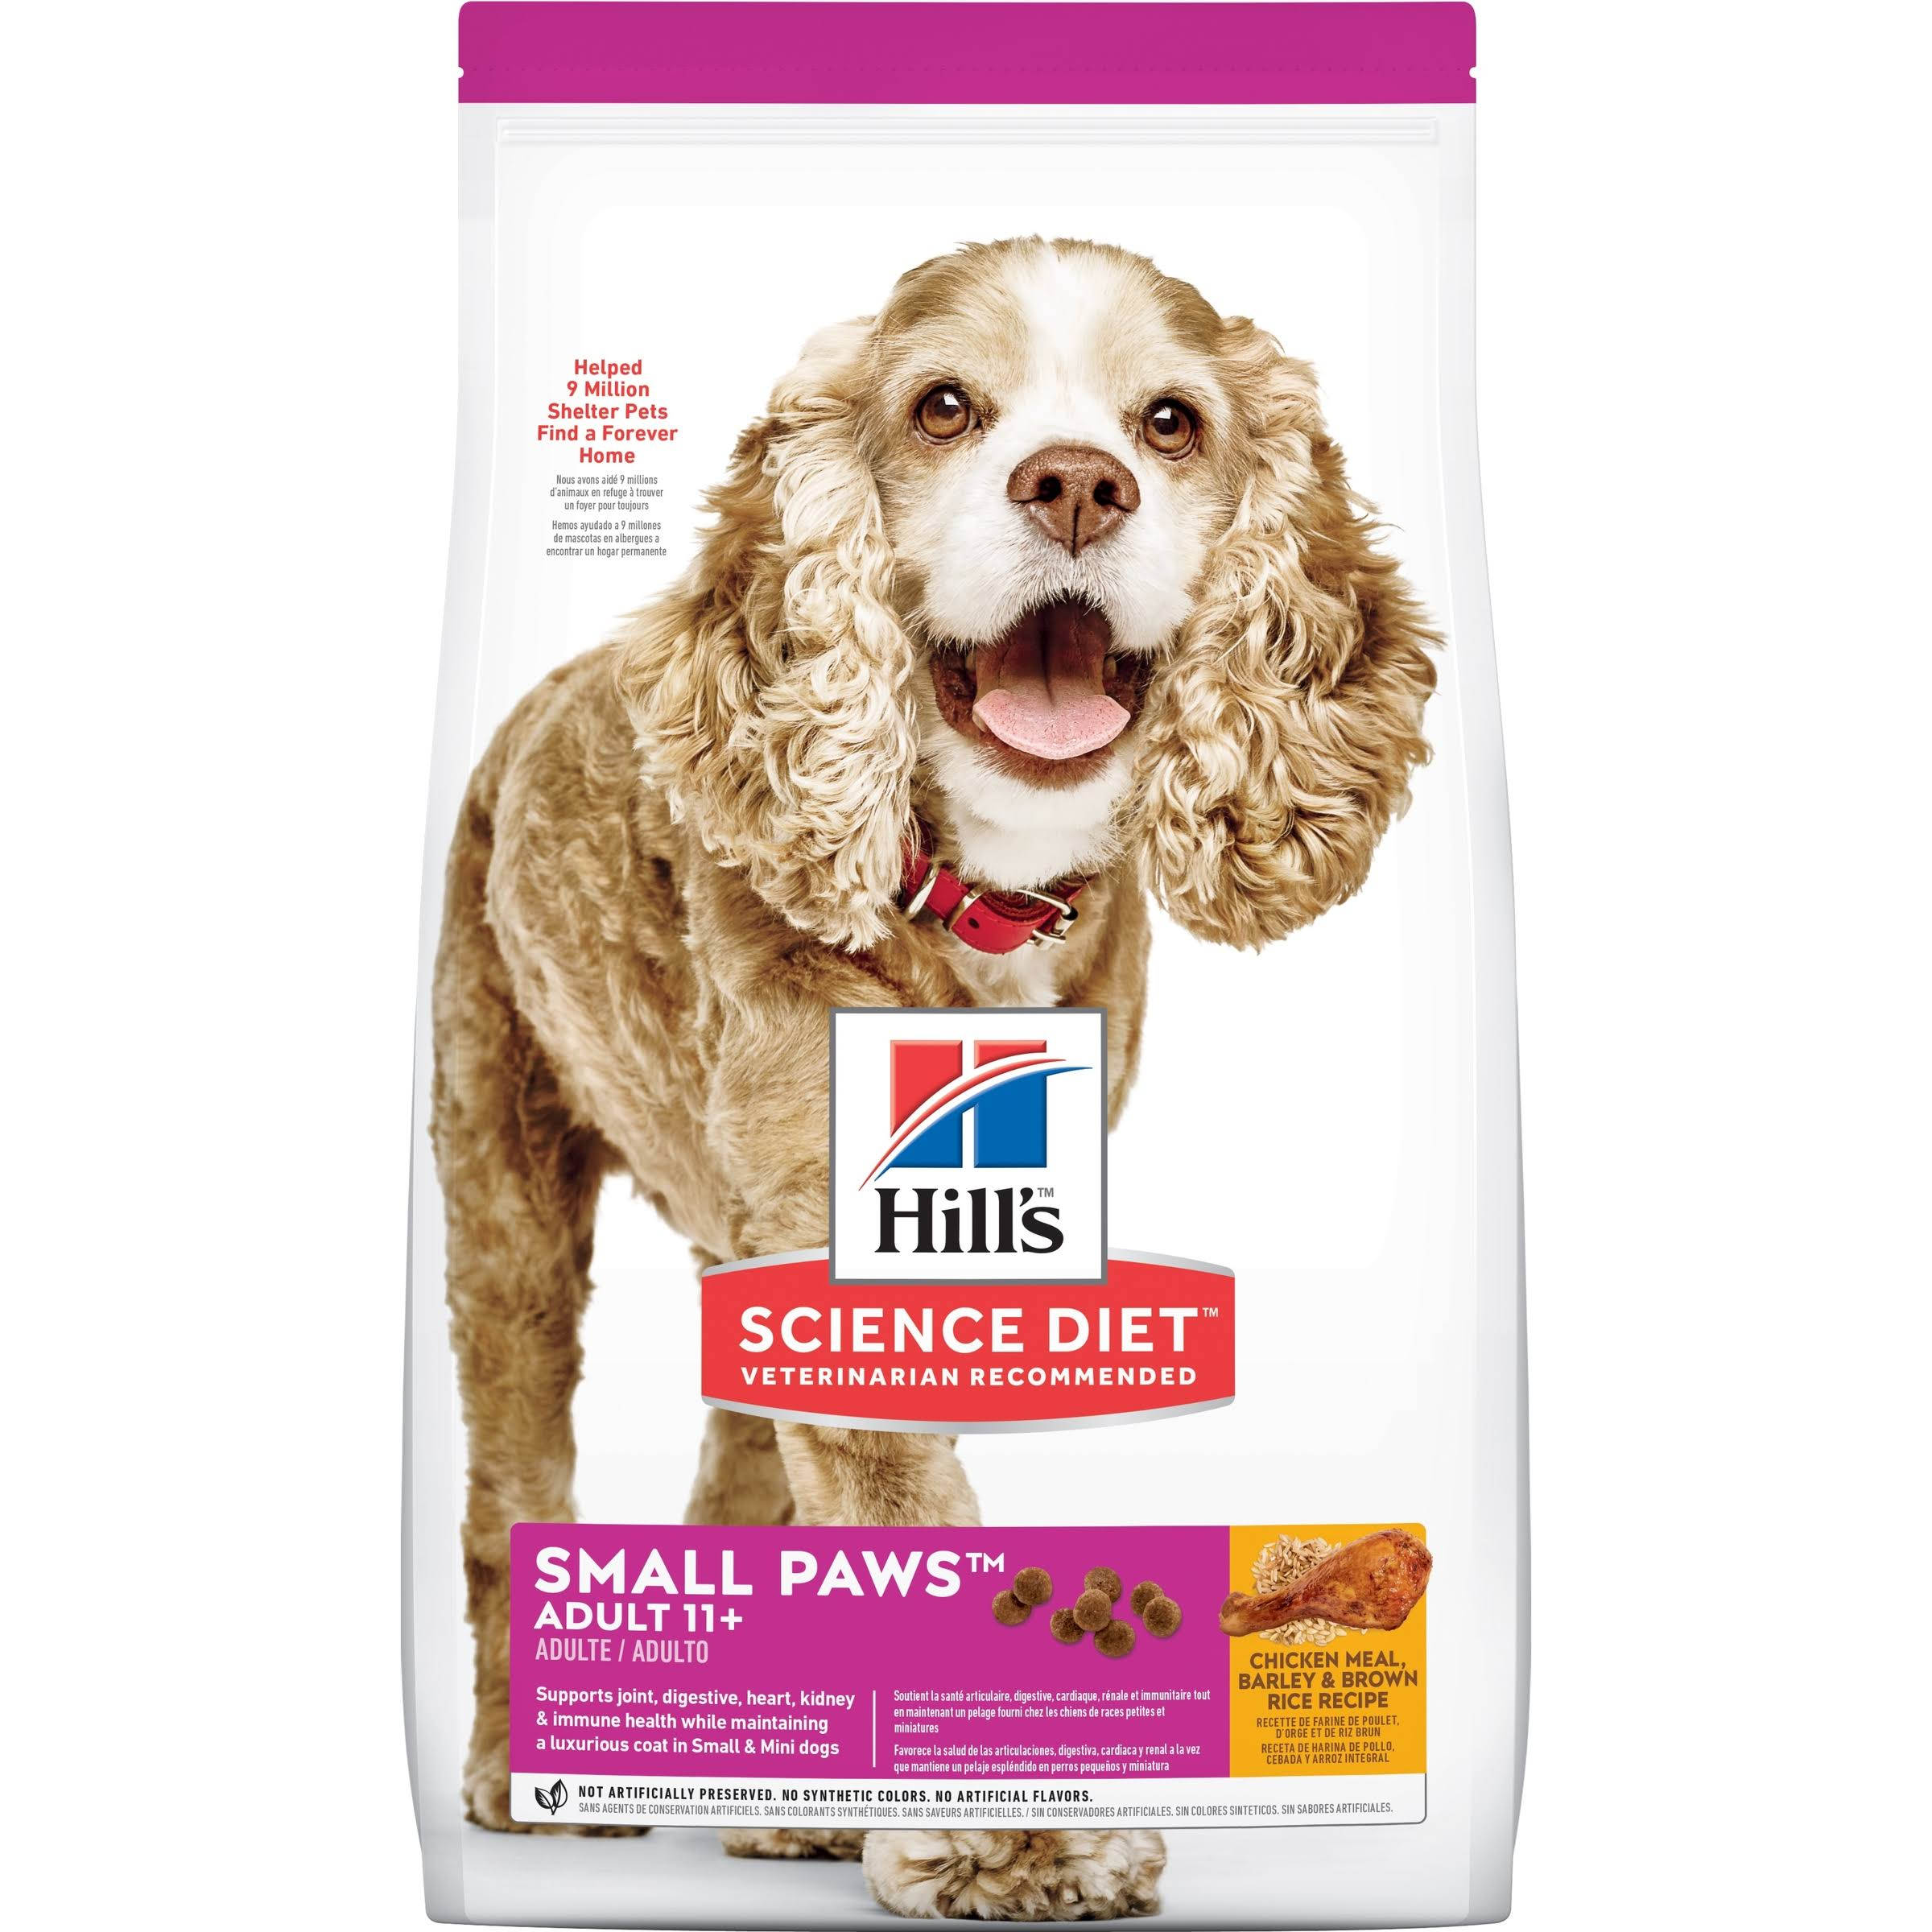 Hill's Science Diet Chicken Meal Premium Natural Dog Food - Rice and Barley Recipe, 4.5lbs